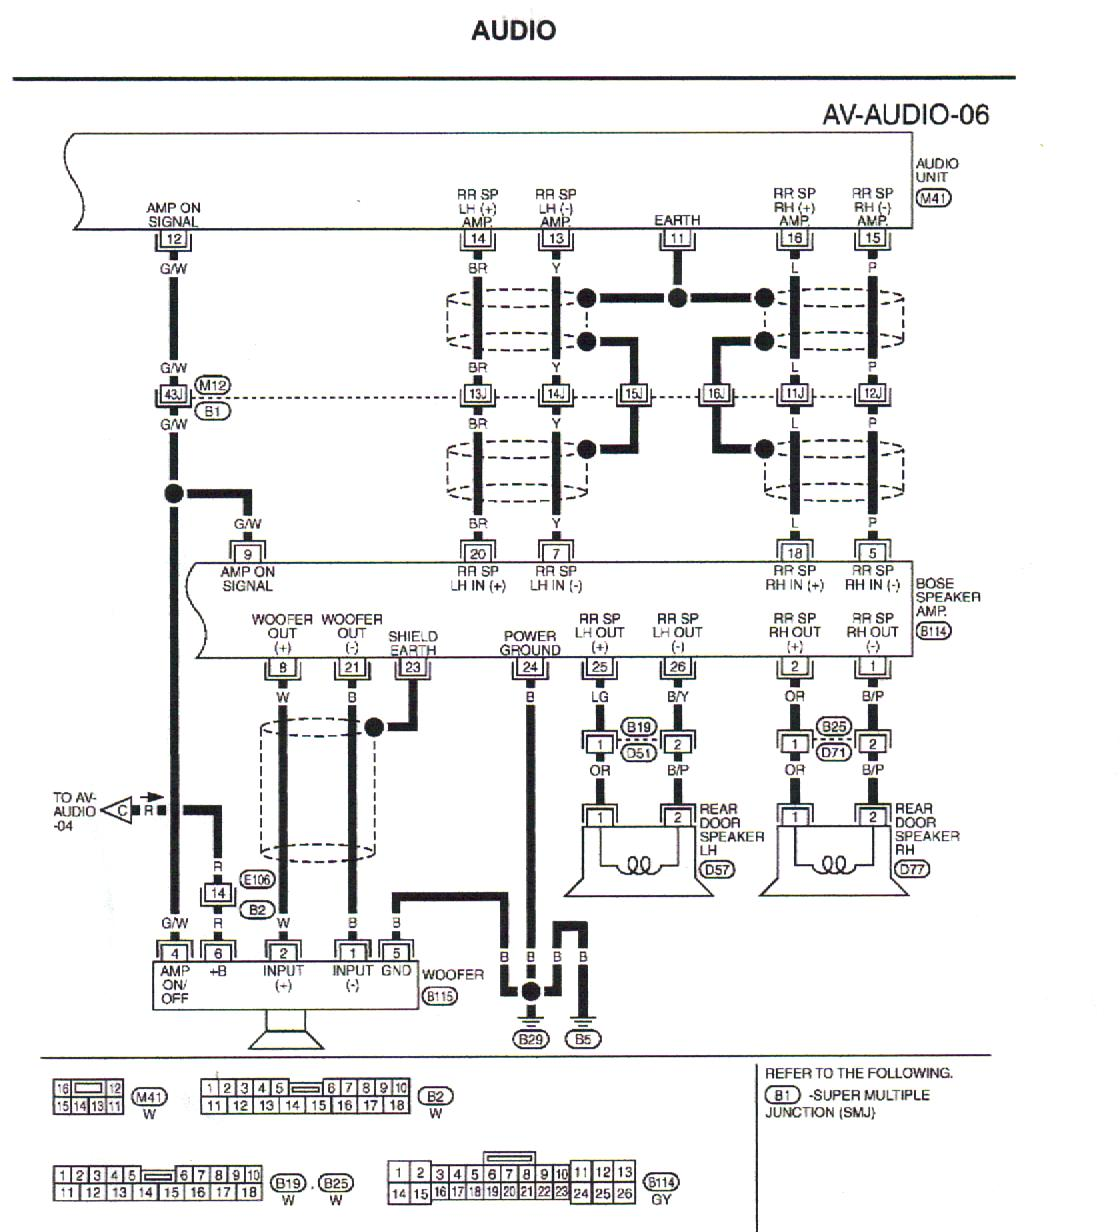 hight resolution of 2003 sedan bose wire colors with diagrams and pics g35driver 2003 infiniti g35 bose stereo wiring diagram